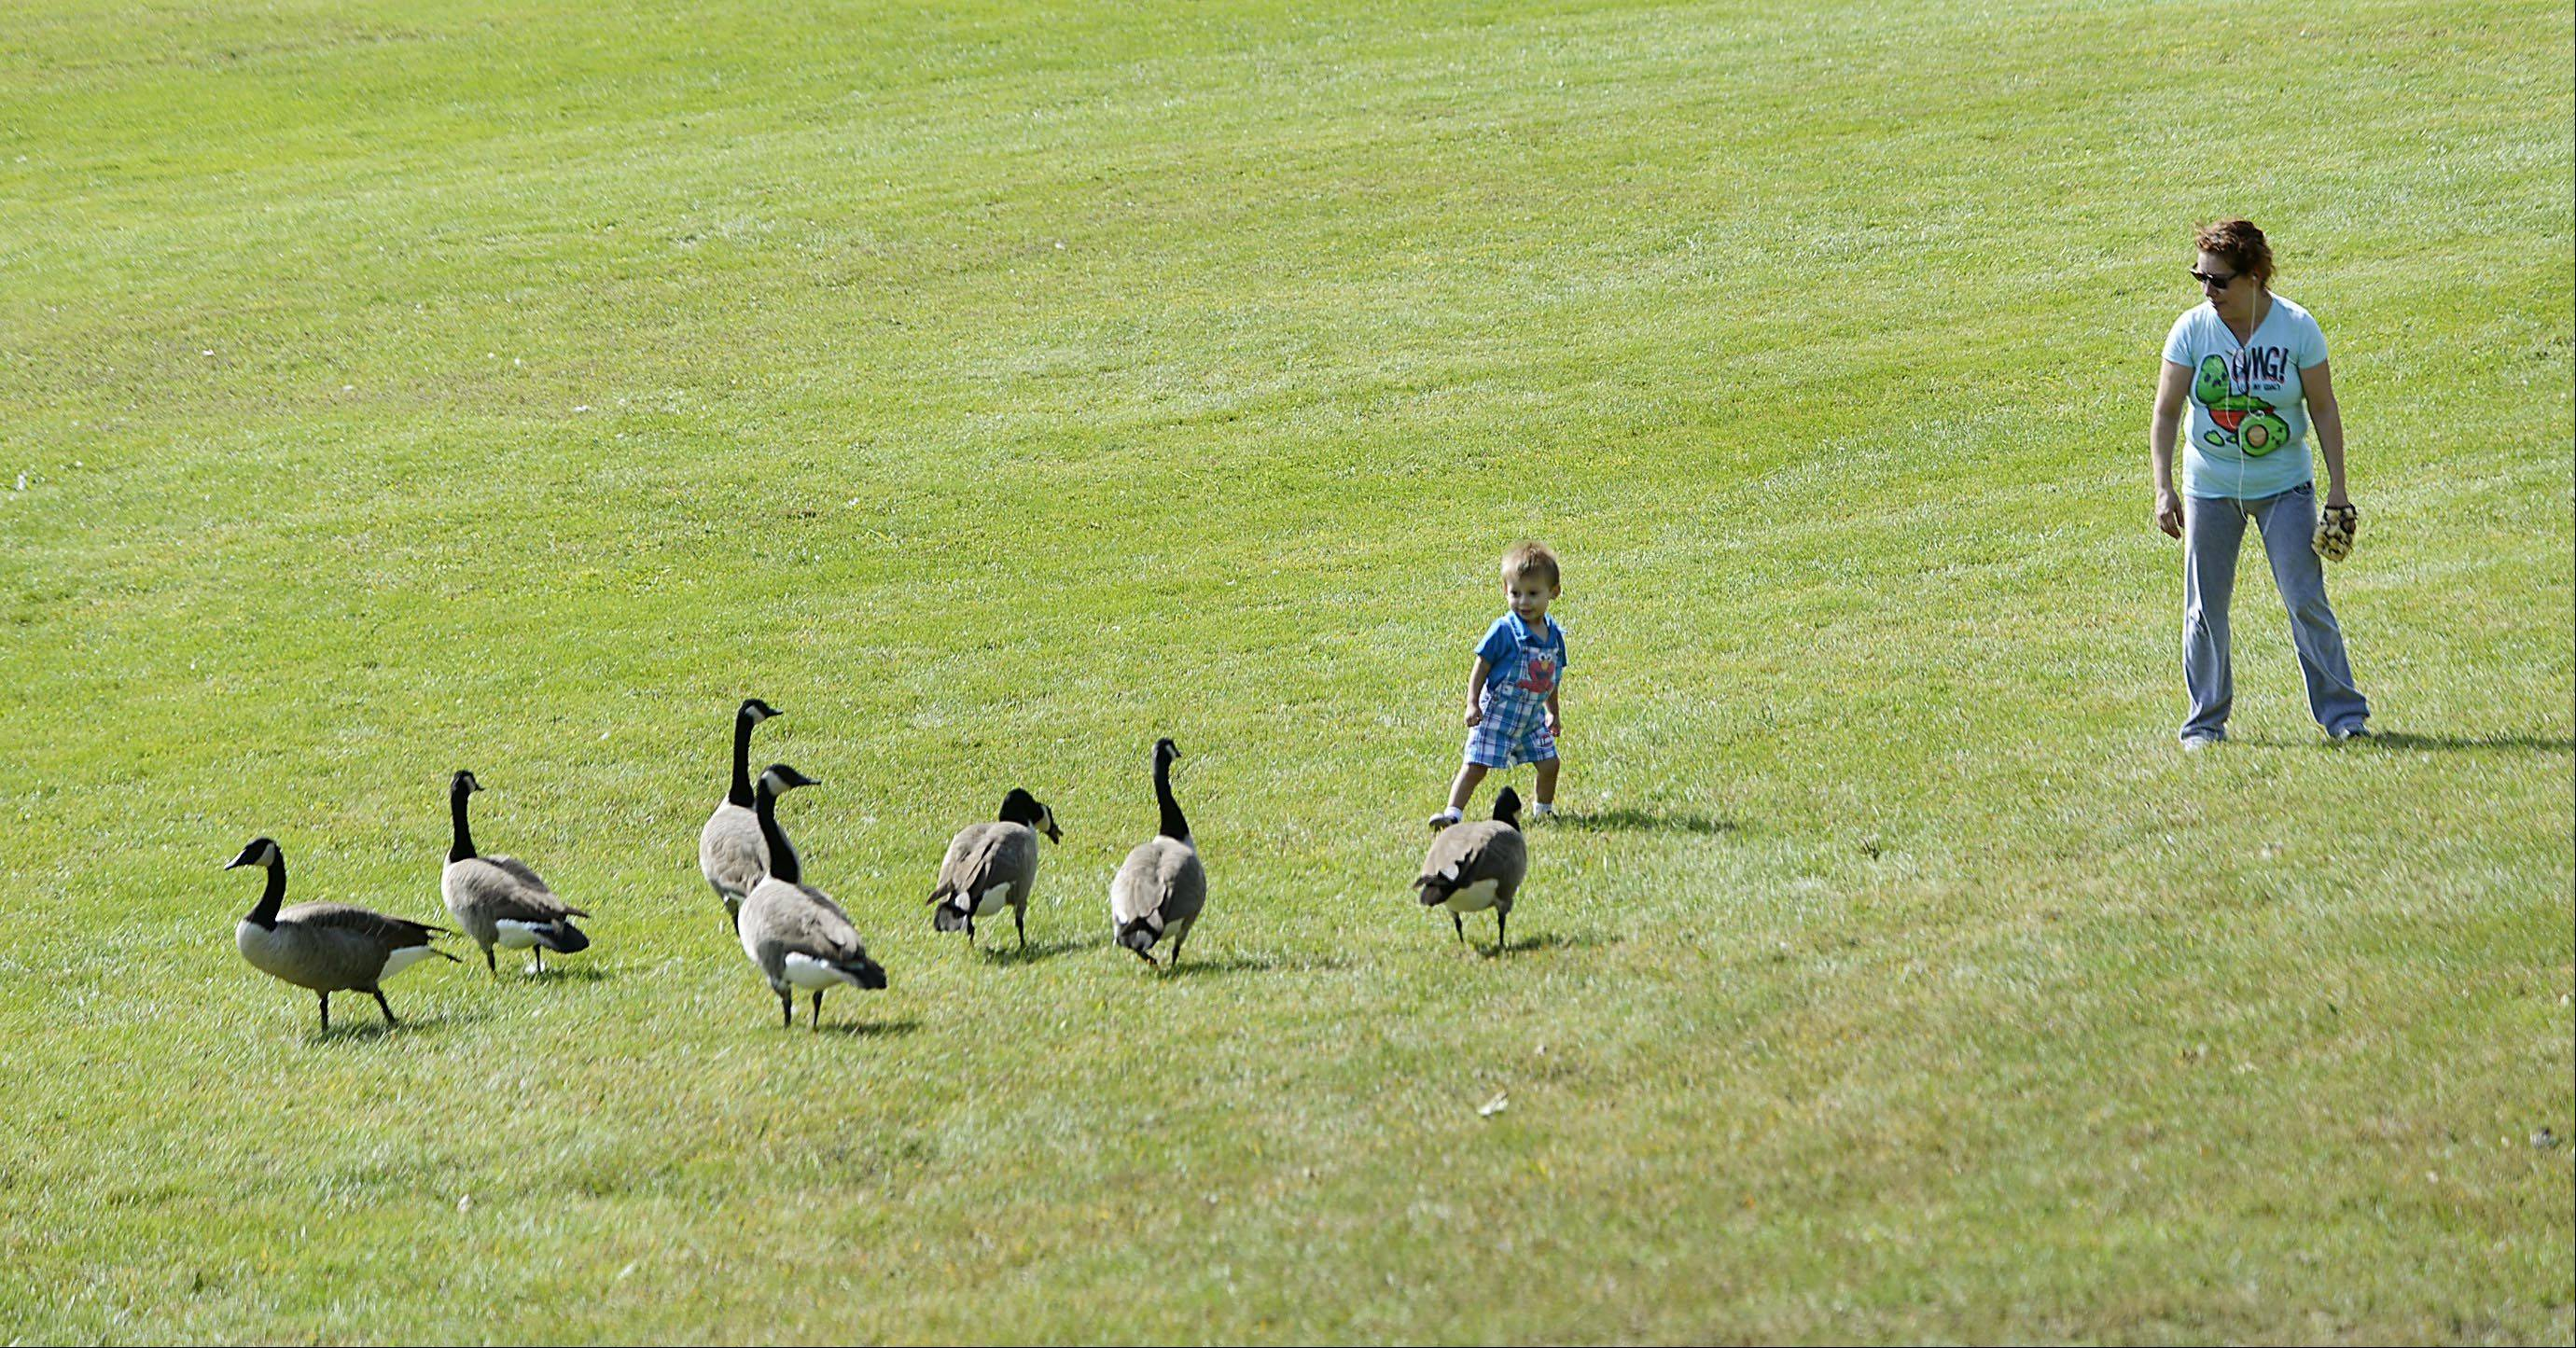 As Eva Torres watches closely, her 22-month-old grandson Jaden, backs away from a gaggle of hissing geese in Veterans Park in Cary Monday afternoon.